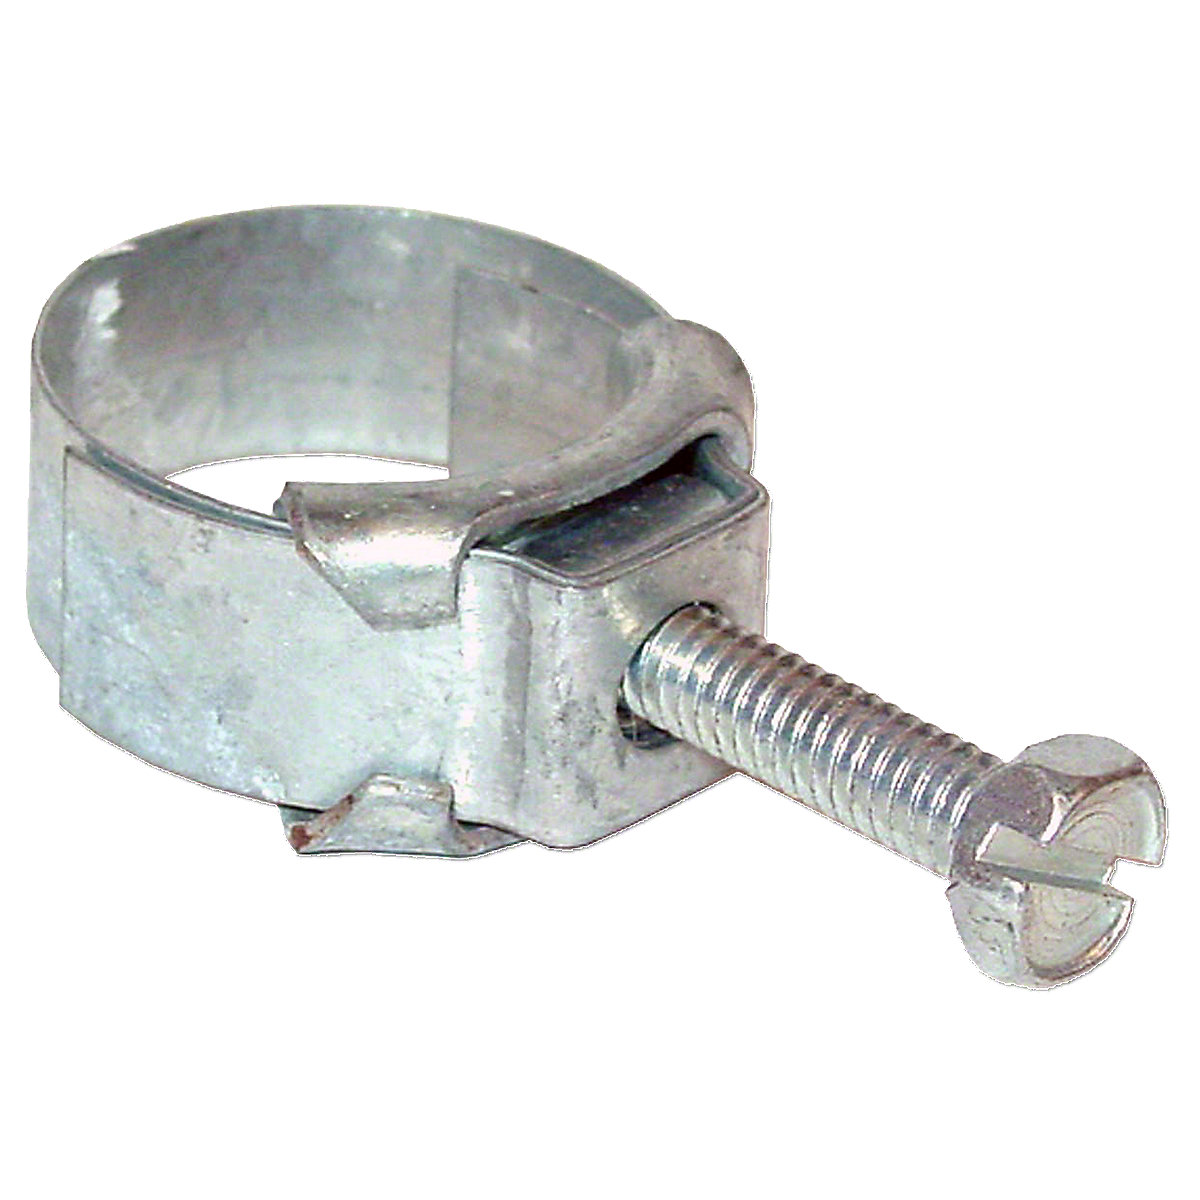 Wittek Tower Hose Clamp For Massey Harris And Massey Ferguson Tractors.